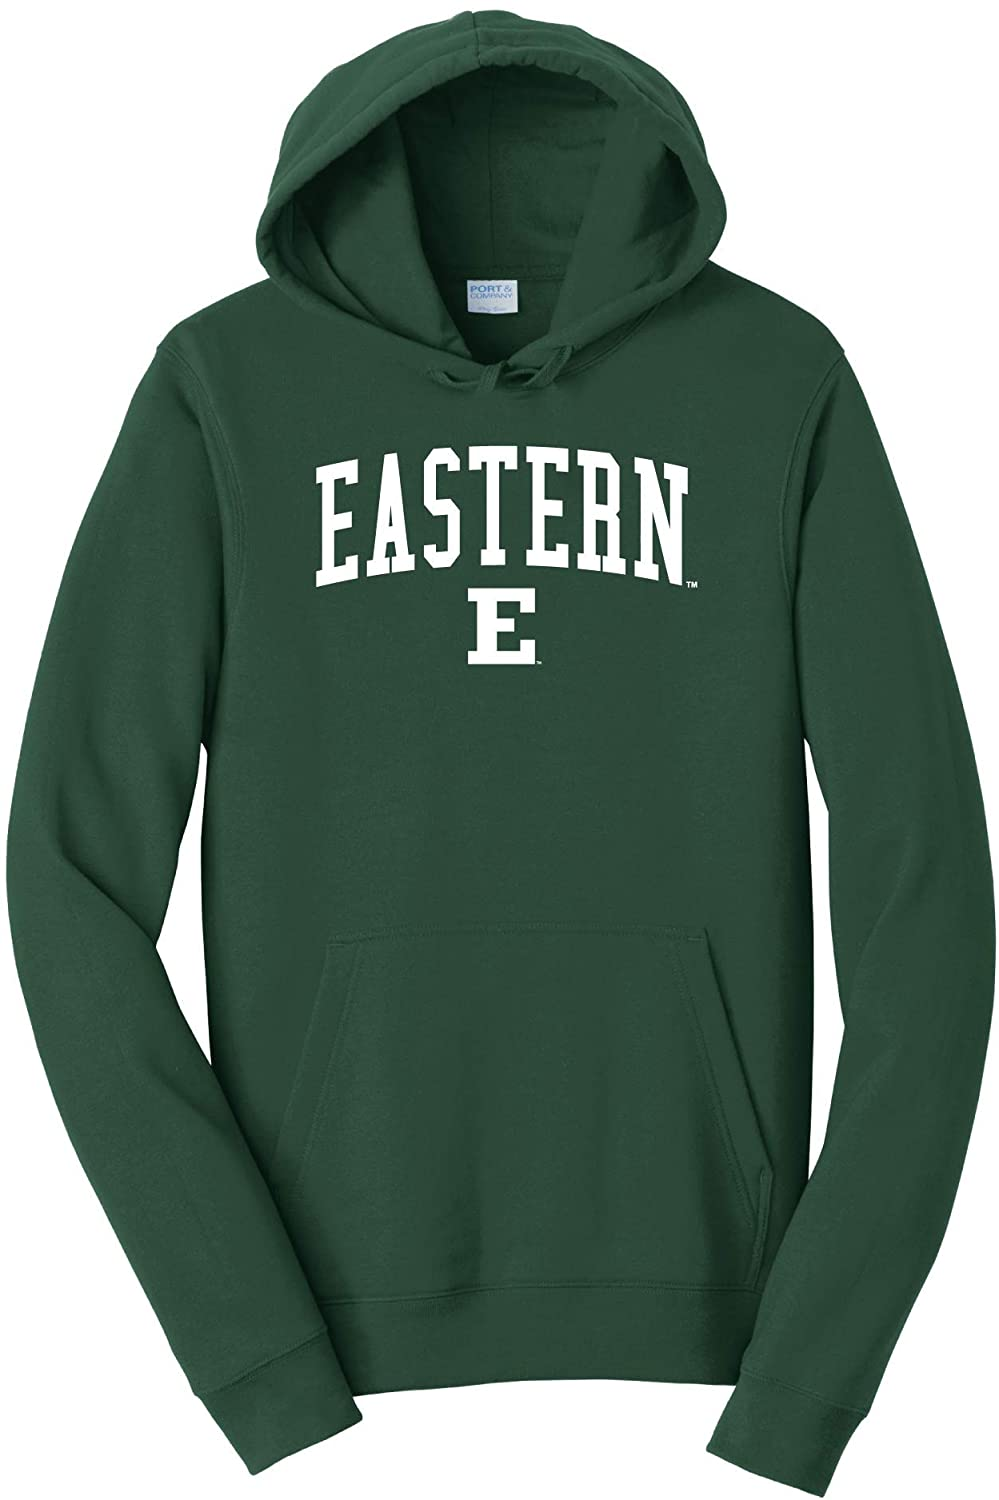 Eastern Michigan University Eagles NCAA Jumbo Arch Unisex Hooded Sweatshirt